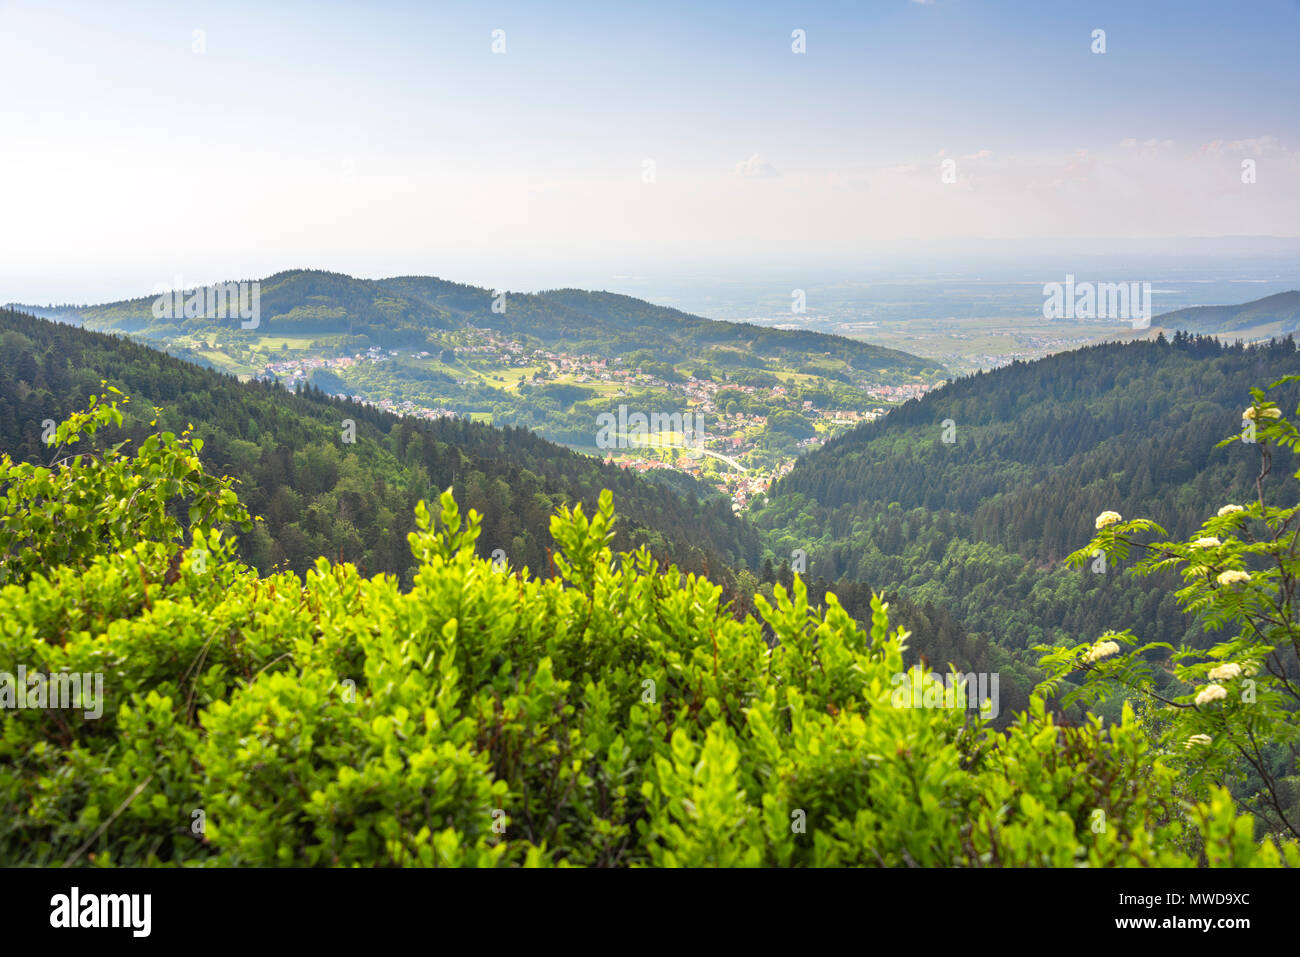 viewpoint Wiedenfelsen at the border of the Black Forest, Germany, panoramic view to the foothills and the Upper Rhine Plain - Stock Image